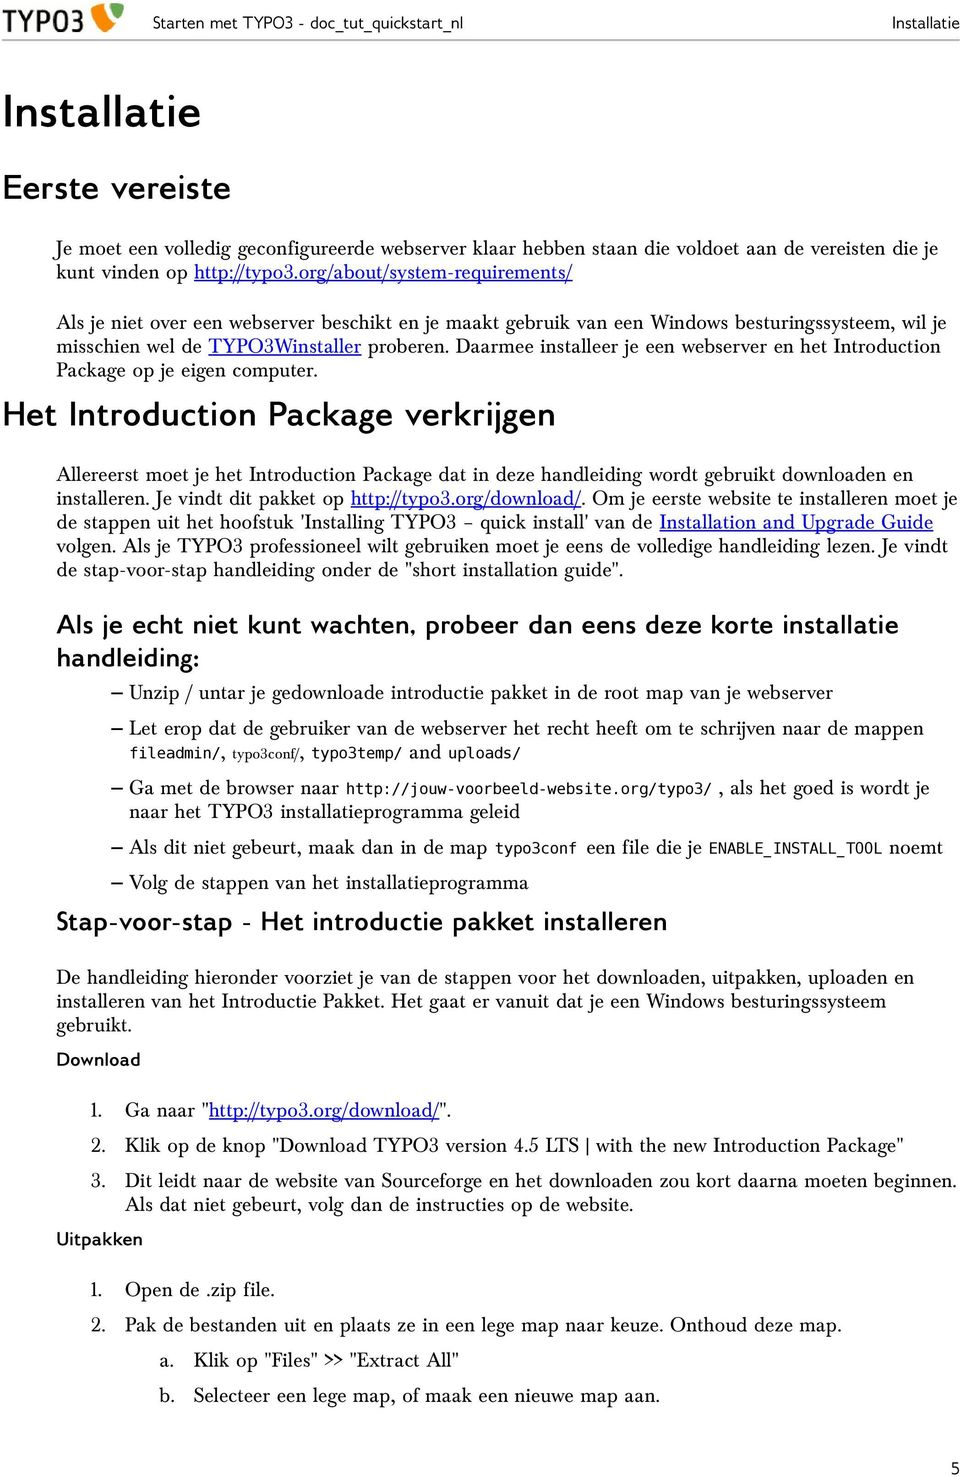 Daarmee installeer je een webserver en het Introduction Package op je eigen computer.